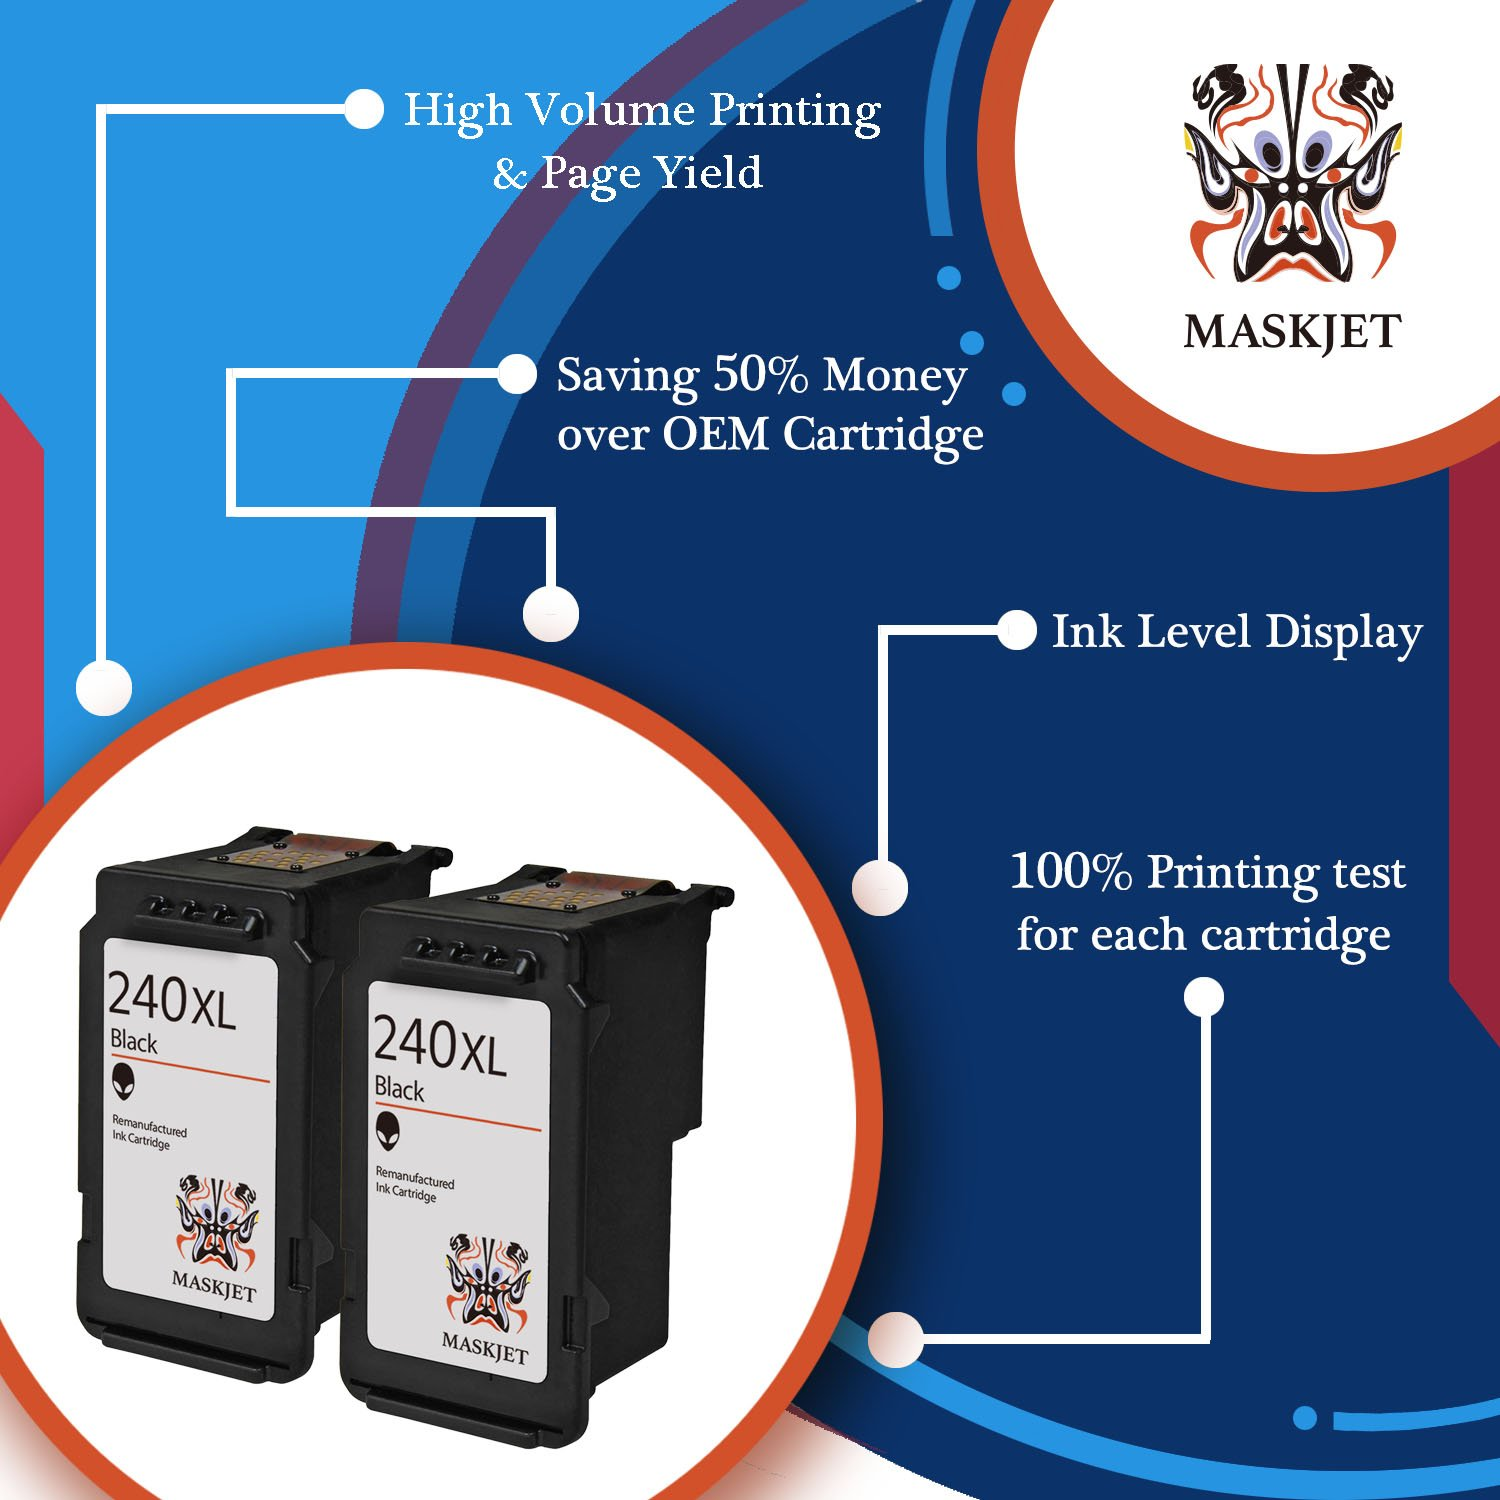 Maskjet Remanufactured Canon Pg 240 Xl Ink Cartridge Wiring Diagram Cannon Mx459 Fax High Yield For Pixma Mg2120 Mg2220 Mg3120 Mg3220 Mg3520 Mg3620 Mg4120 Mg4220 Mx372